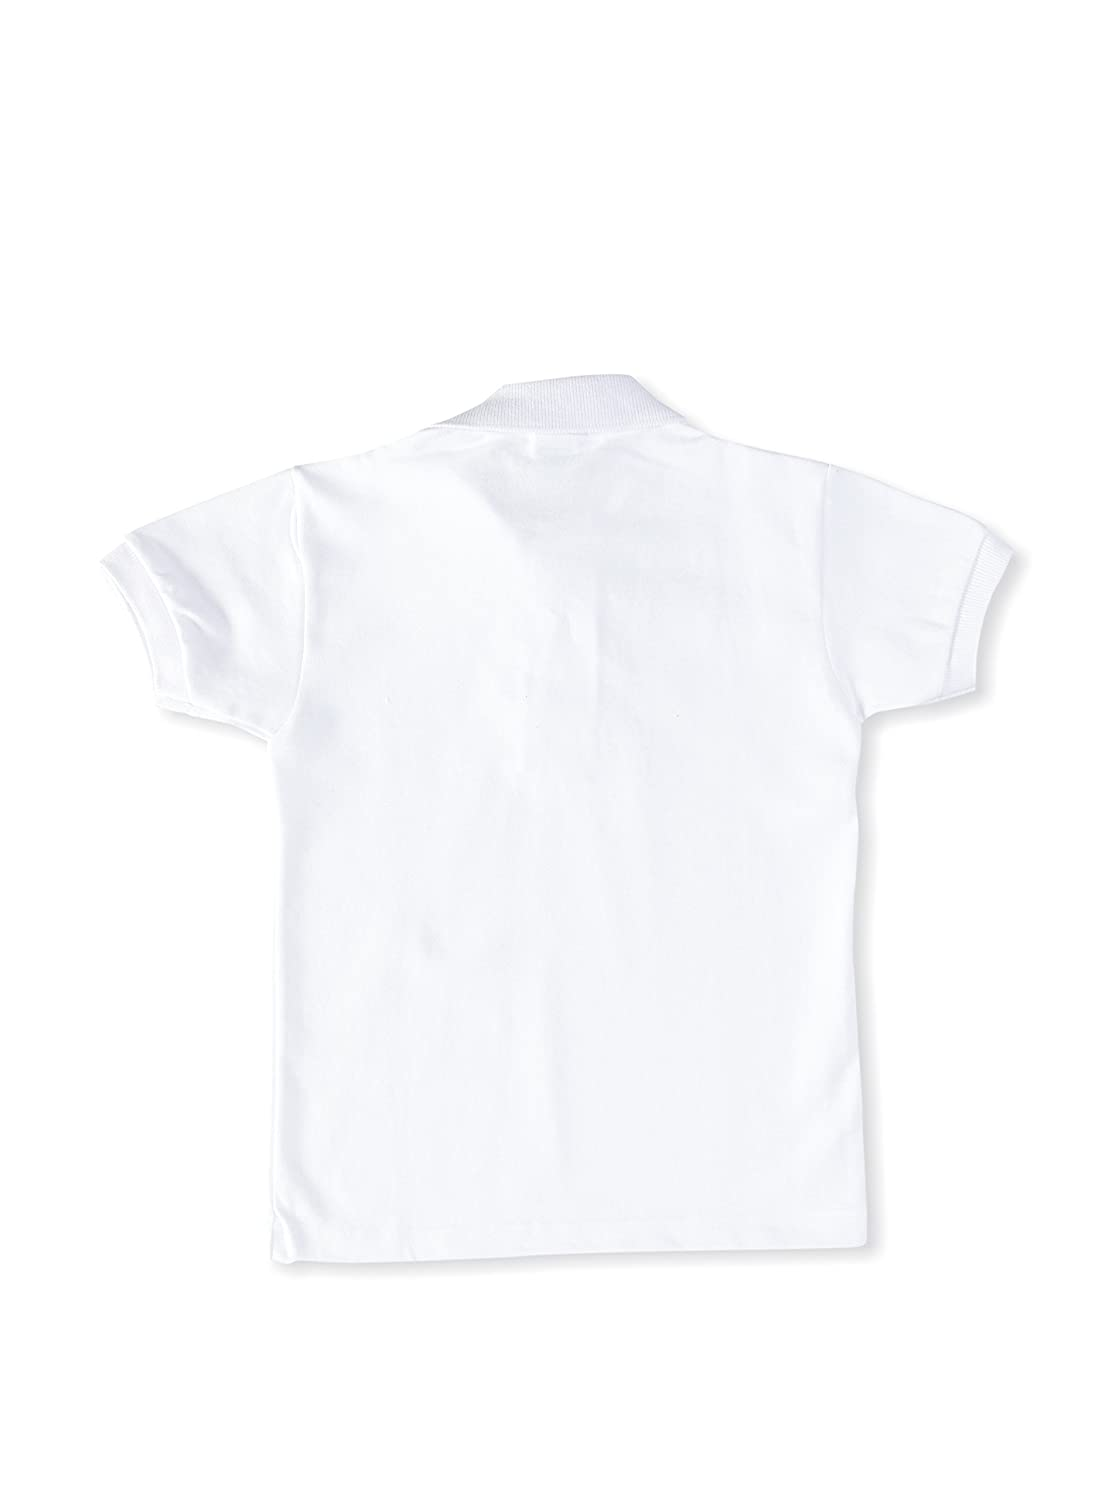 Uniformes De Colegio Polo Blanco 3 años (98 cm): Amazon.es: Ropa y ...